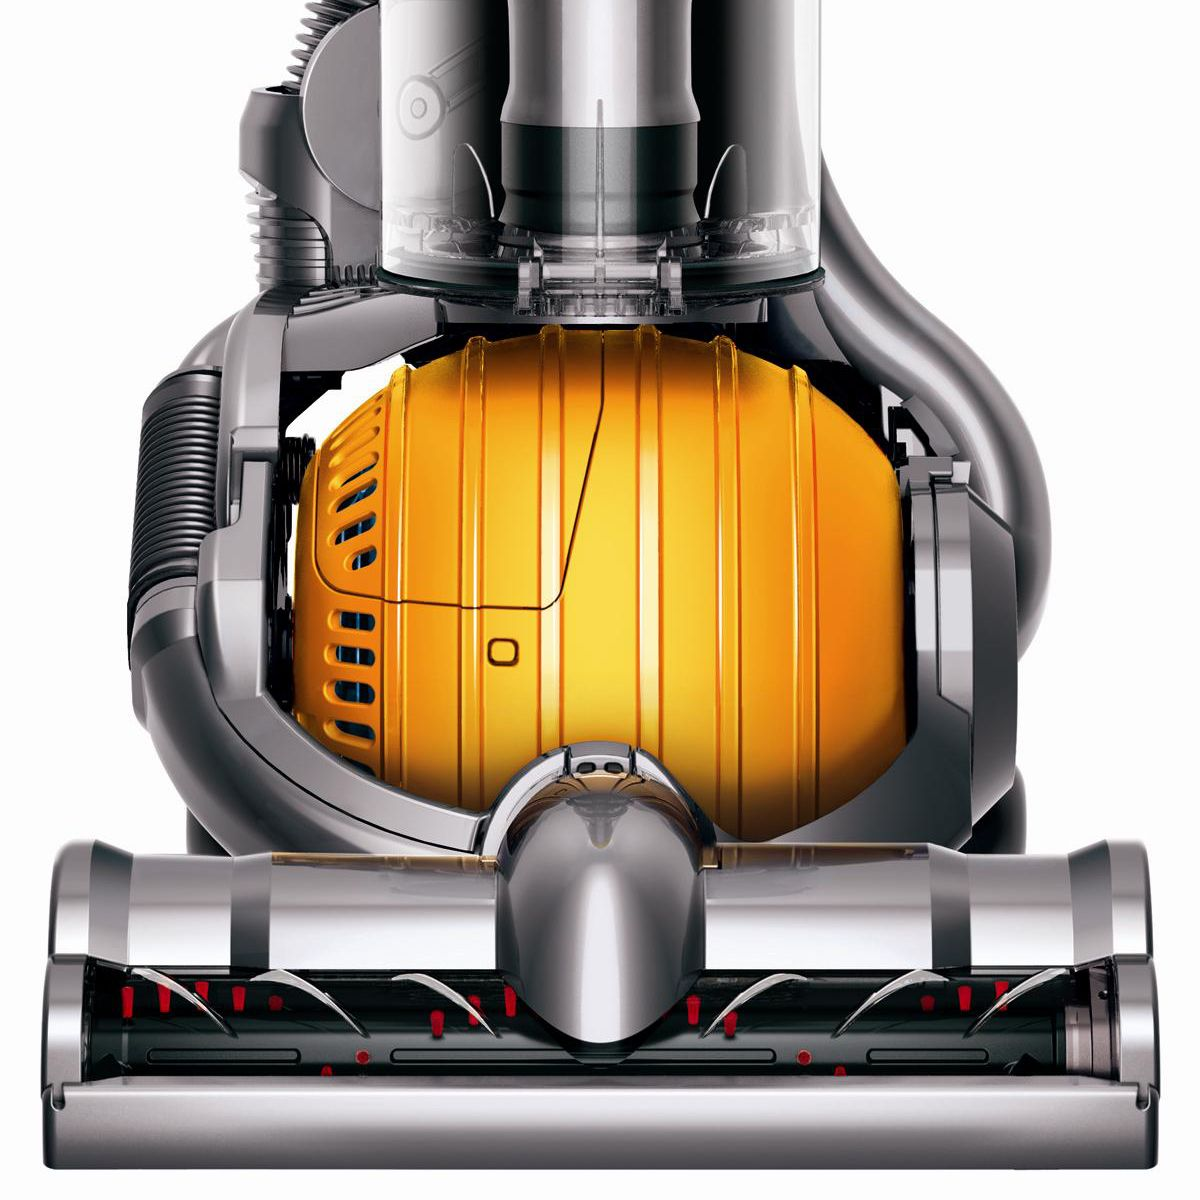 dyson ball vacuum cleaner - Consumers Report Vacuum Cleaners